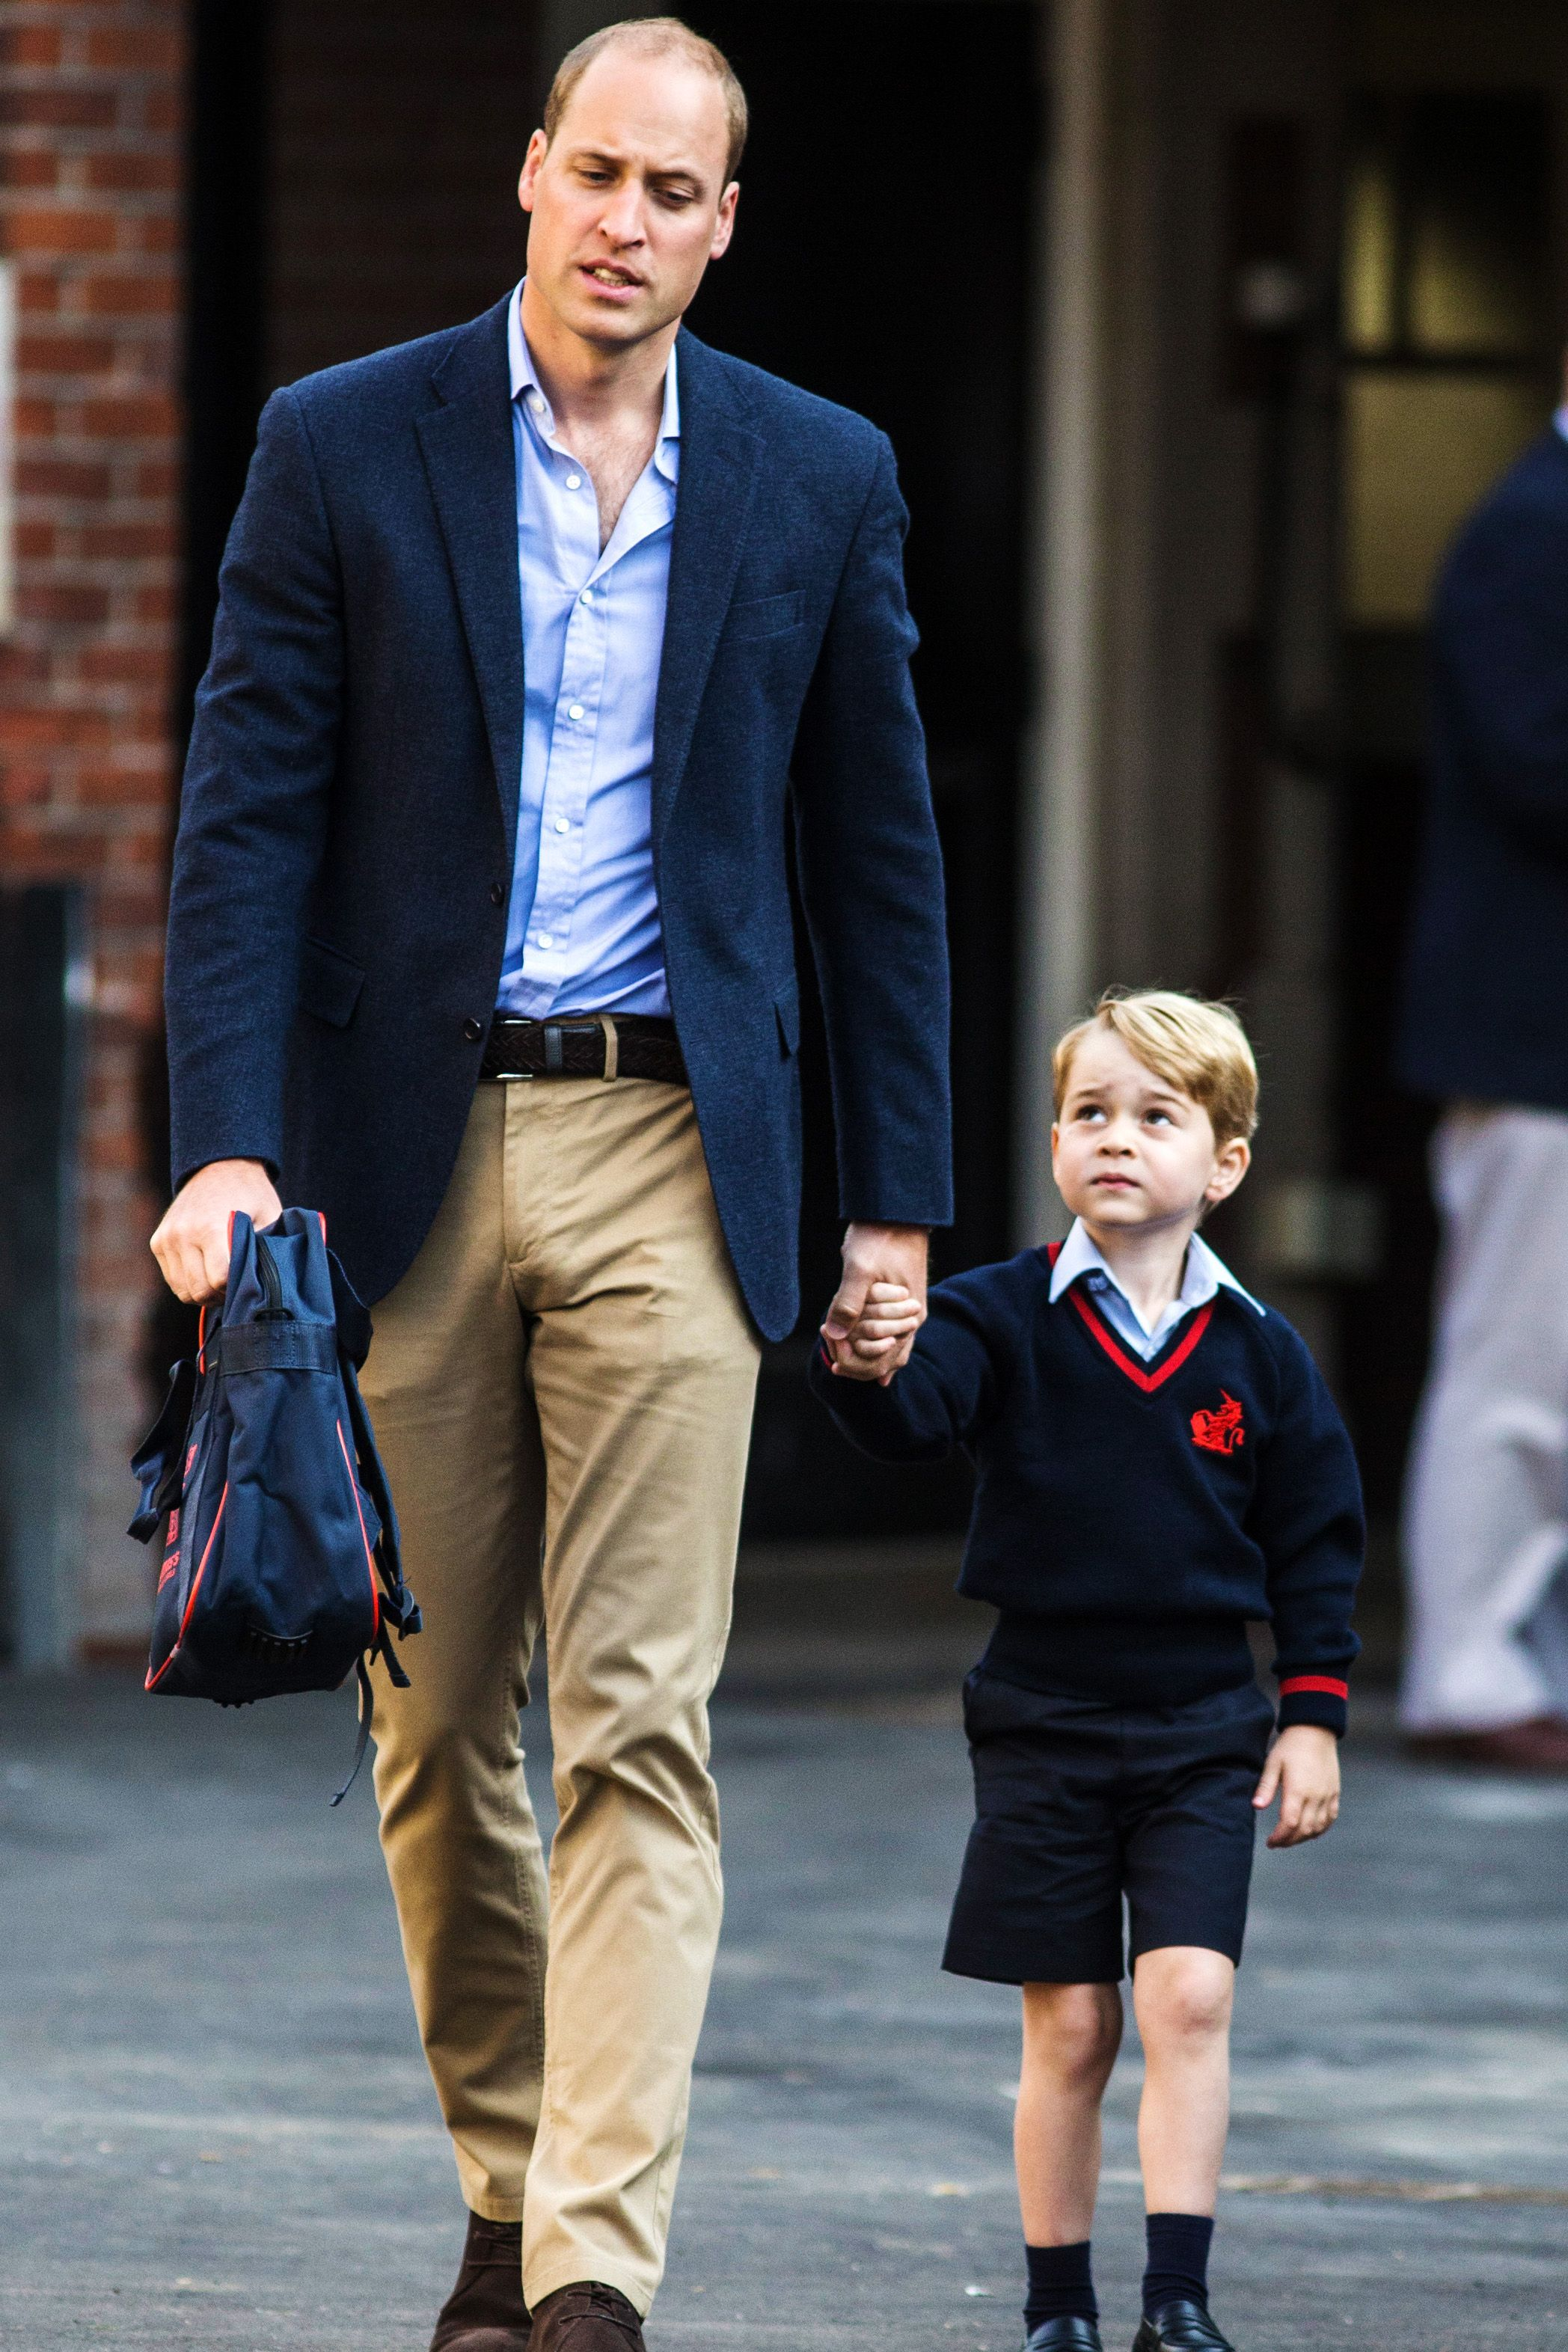 Prince William, Duke of Cambridge and Prince George of Cambridge